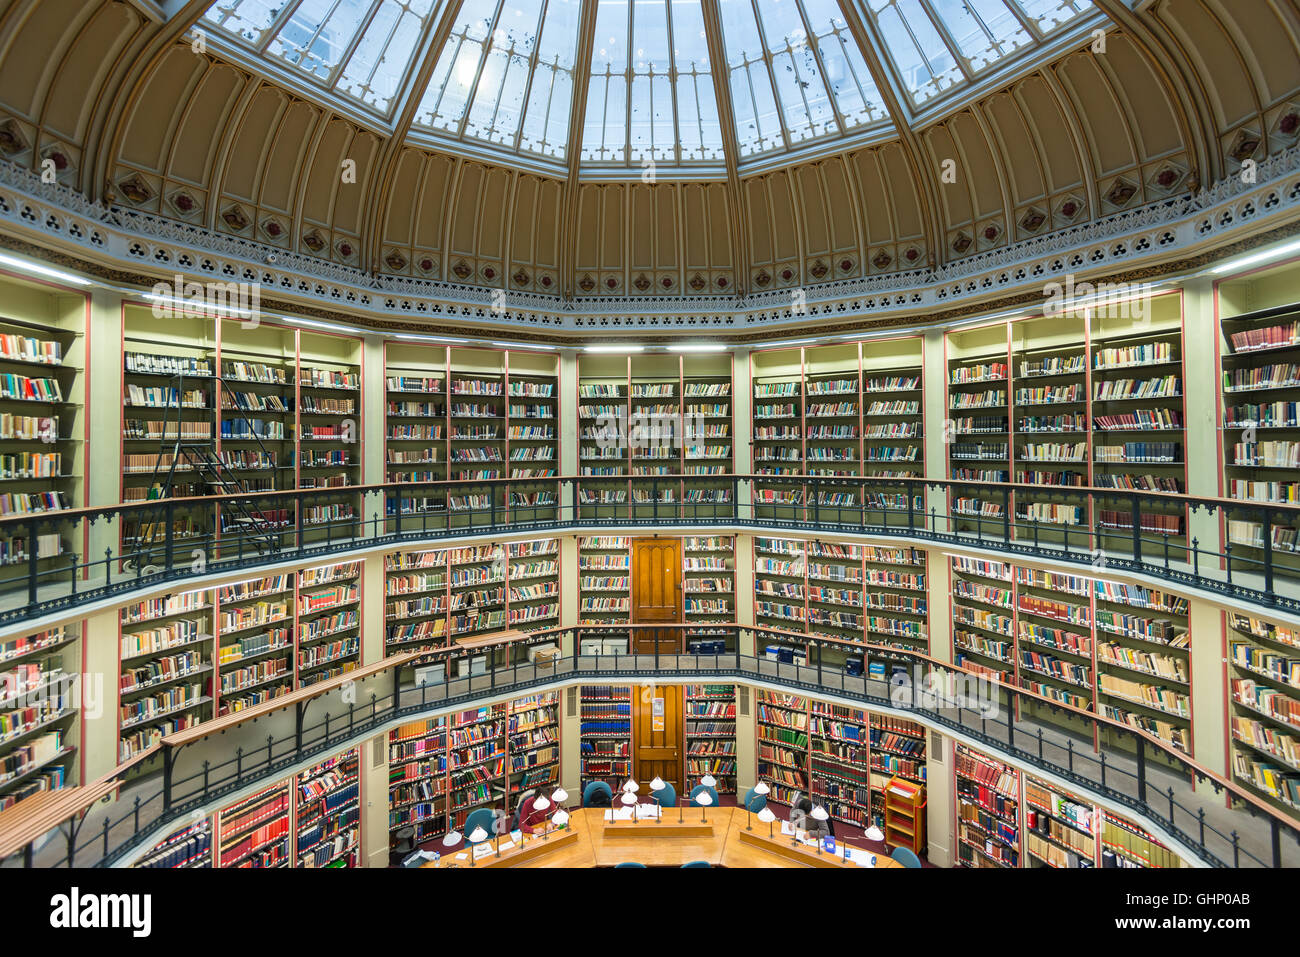 Domed reading room, Maughan Library, King's College London, London, United Kingdom - Stock Image